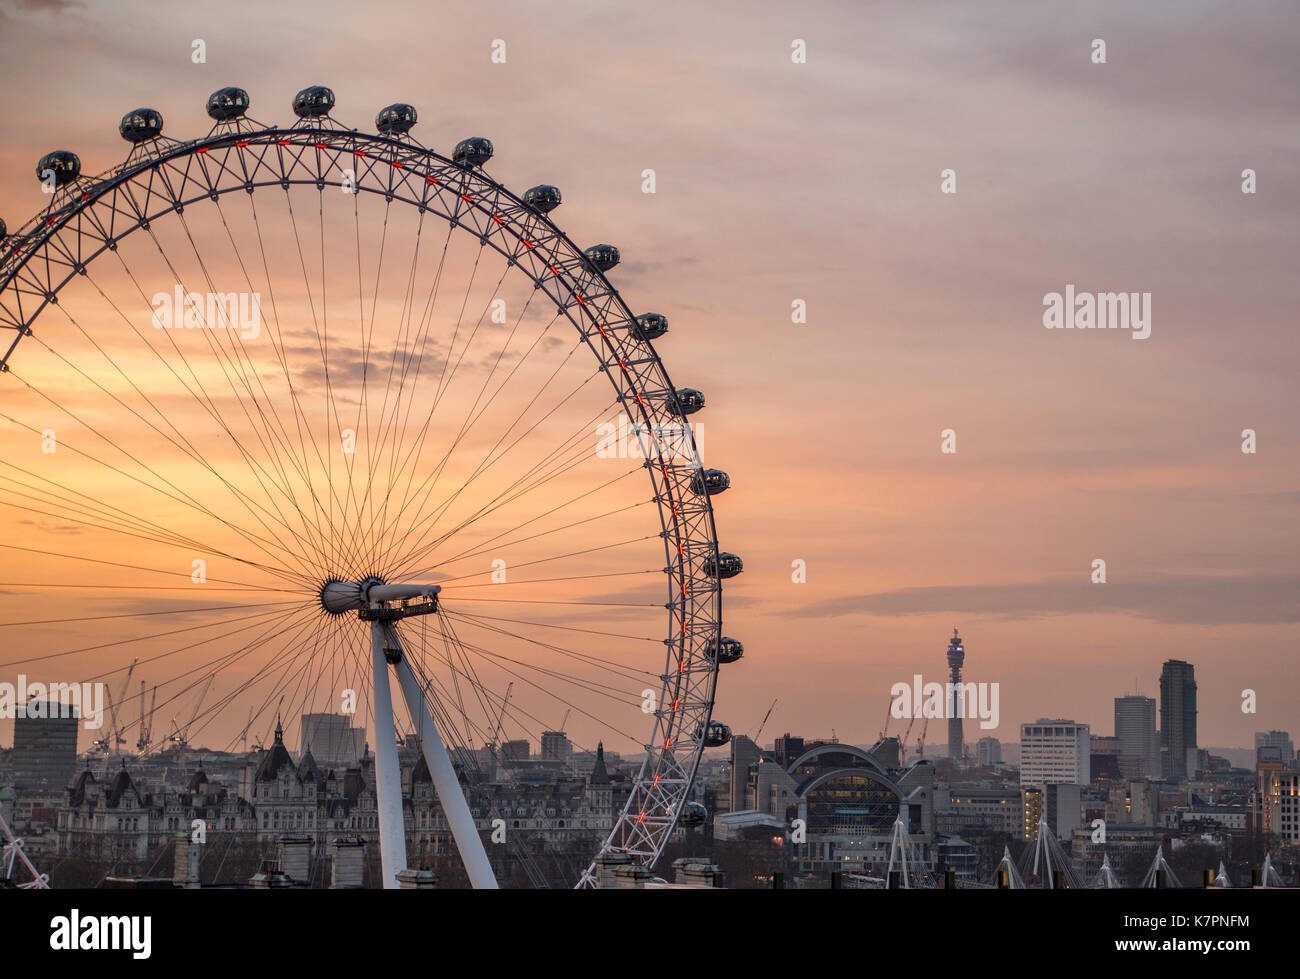 The London Eye, sunset. - Stock Image